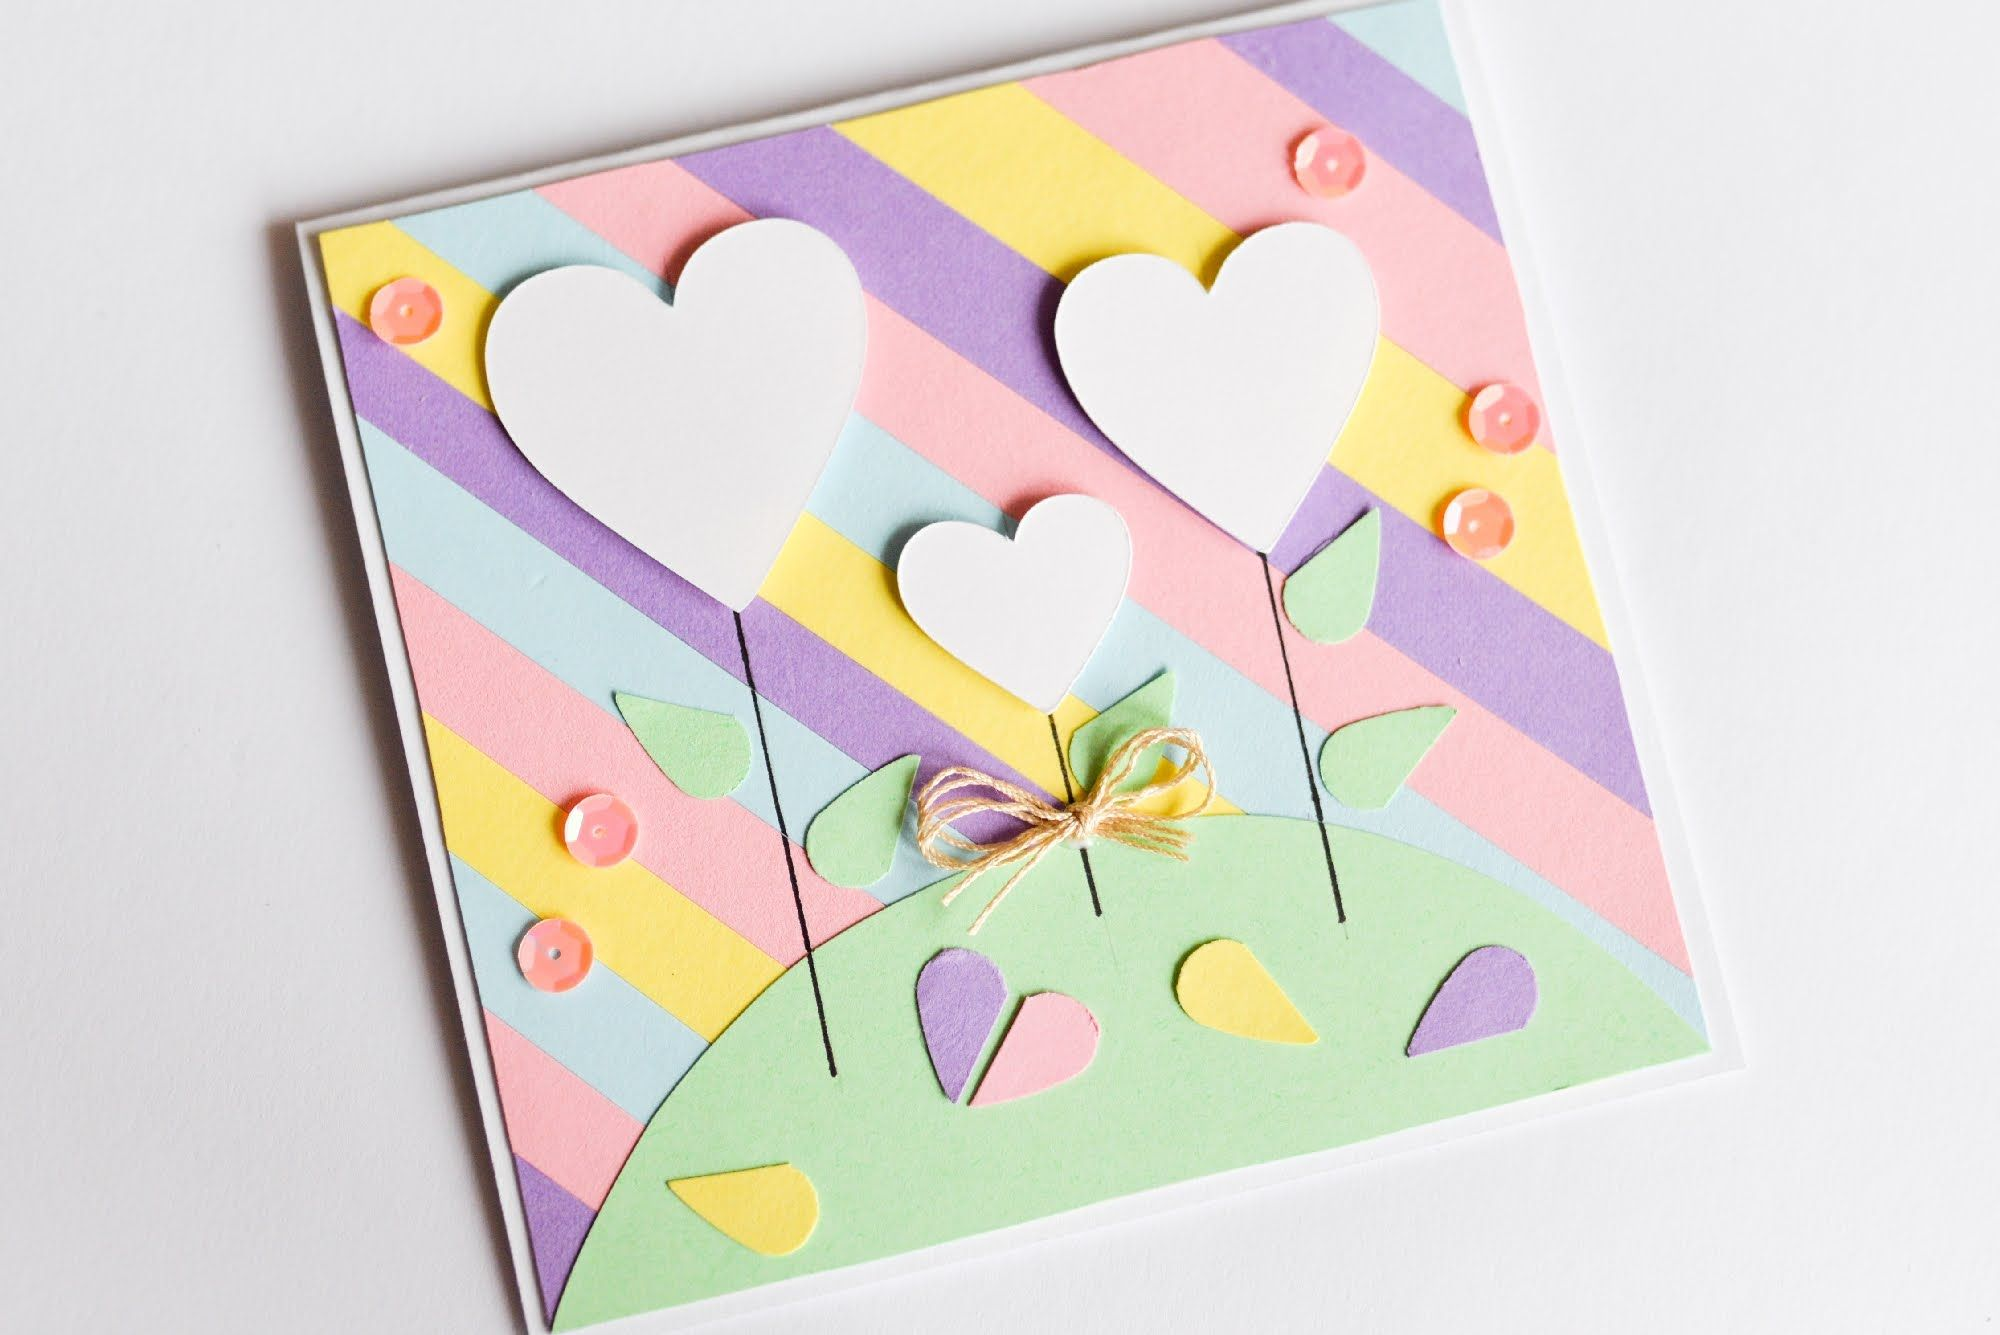 How to make valentines day greeting card easy cute step by step how to make valentines day greeting card easy cute step by step k m4hsunfo